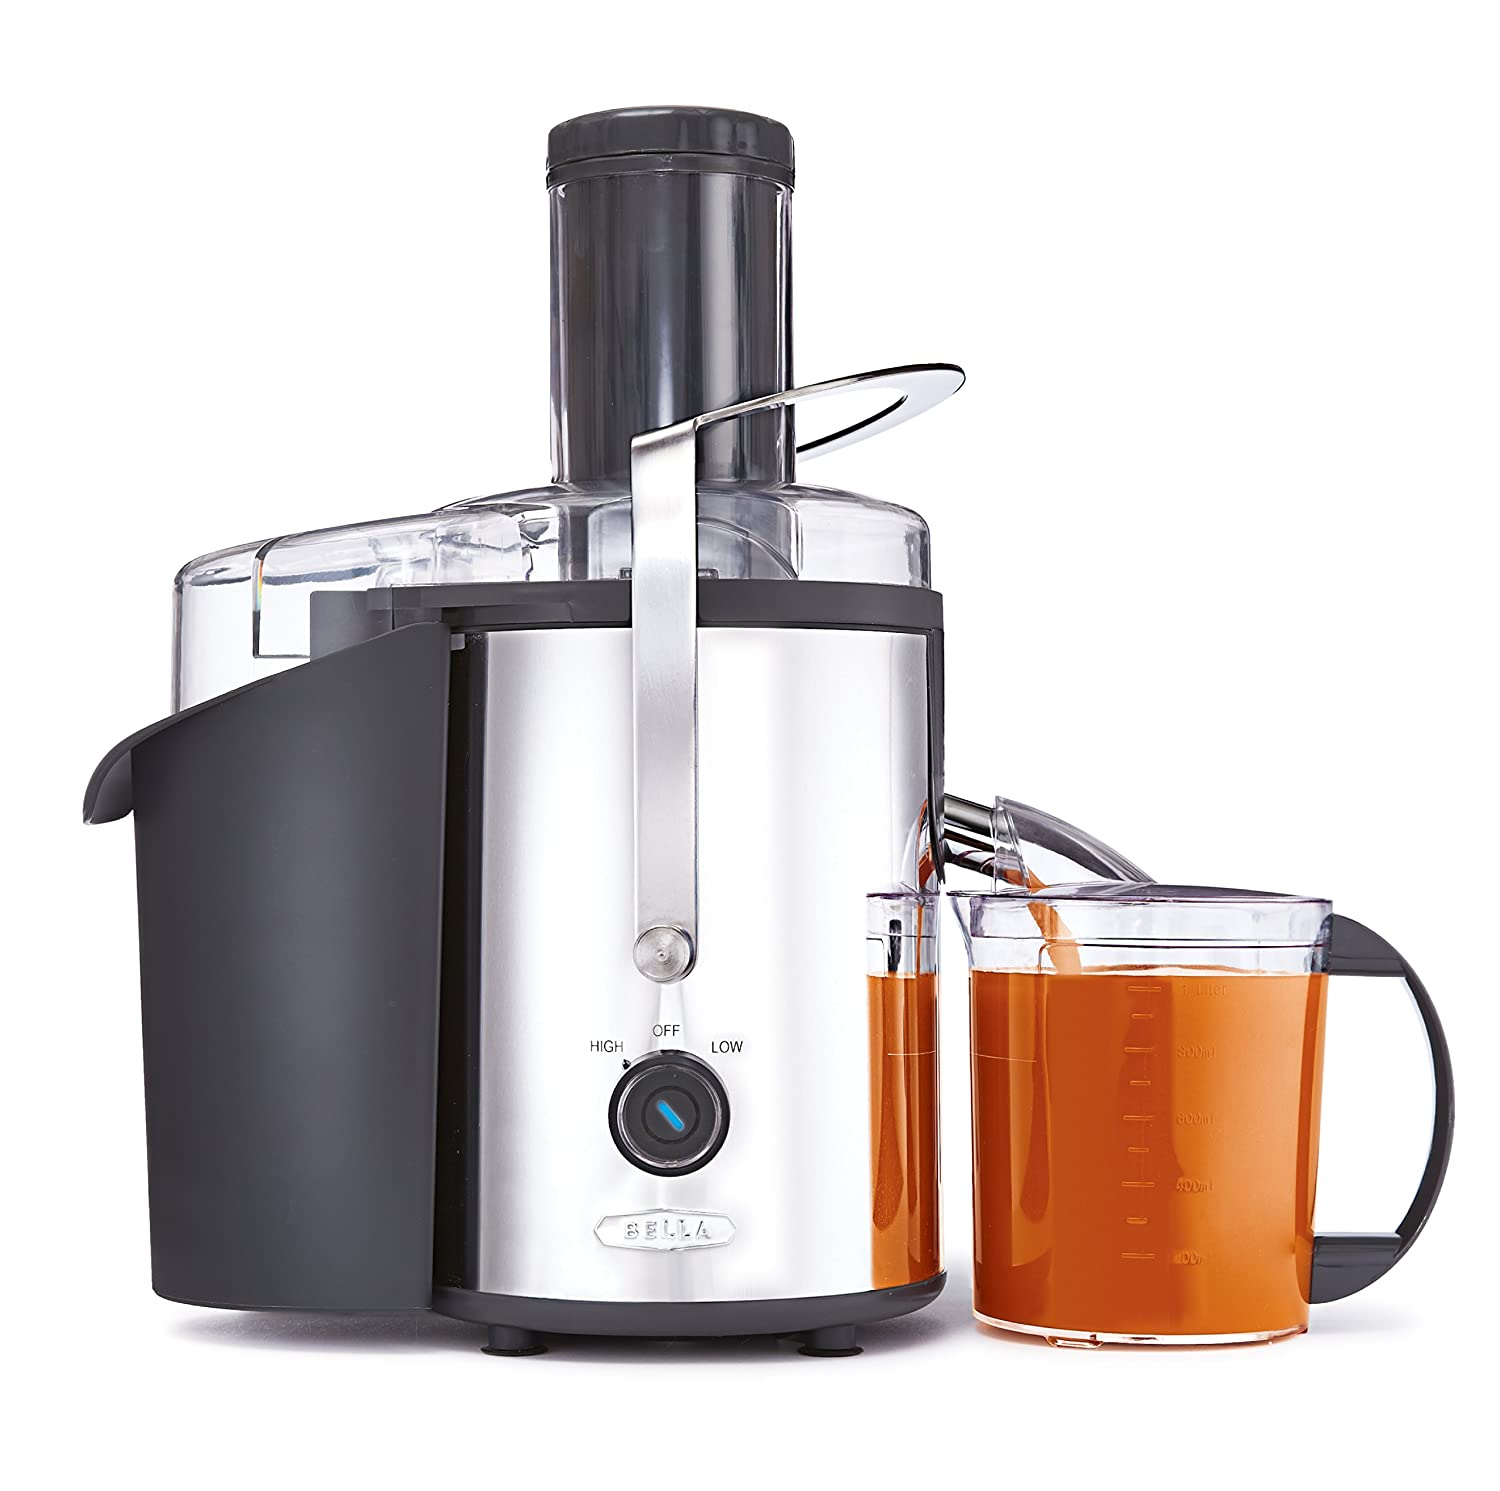 BELLA (13694) High Power Juice Extractor, Stainless Steel